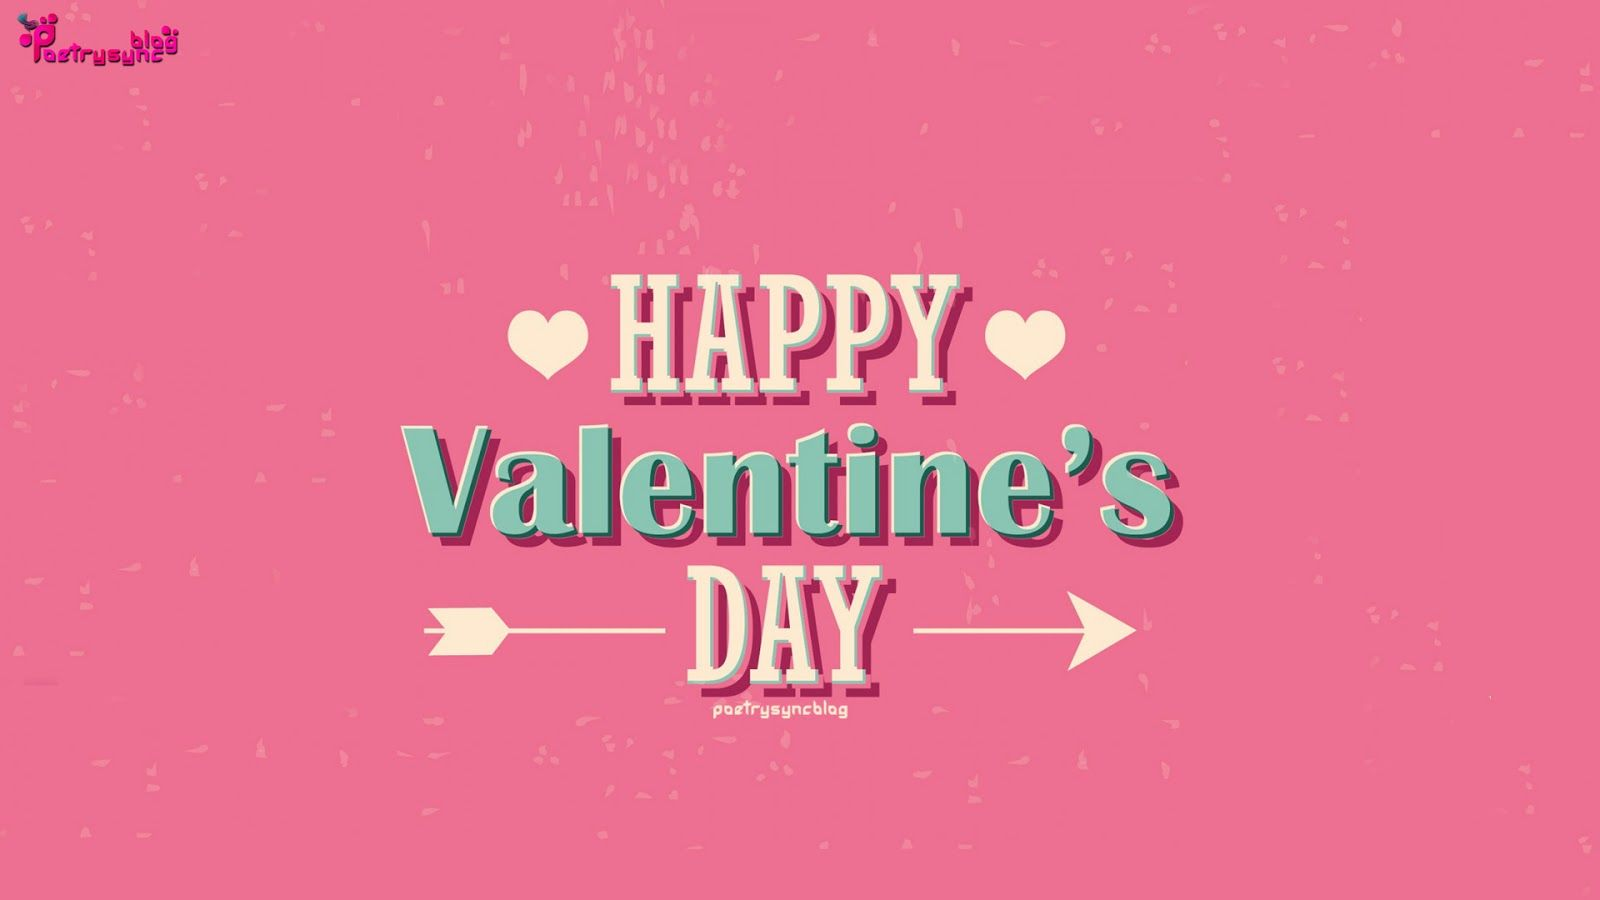 Cute Happy Valentines Day Wallpaper